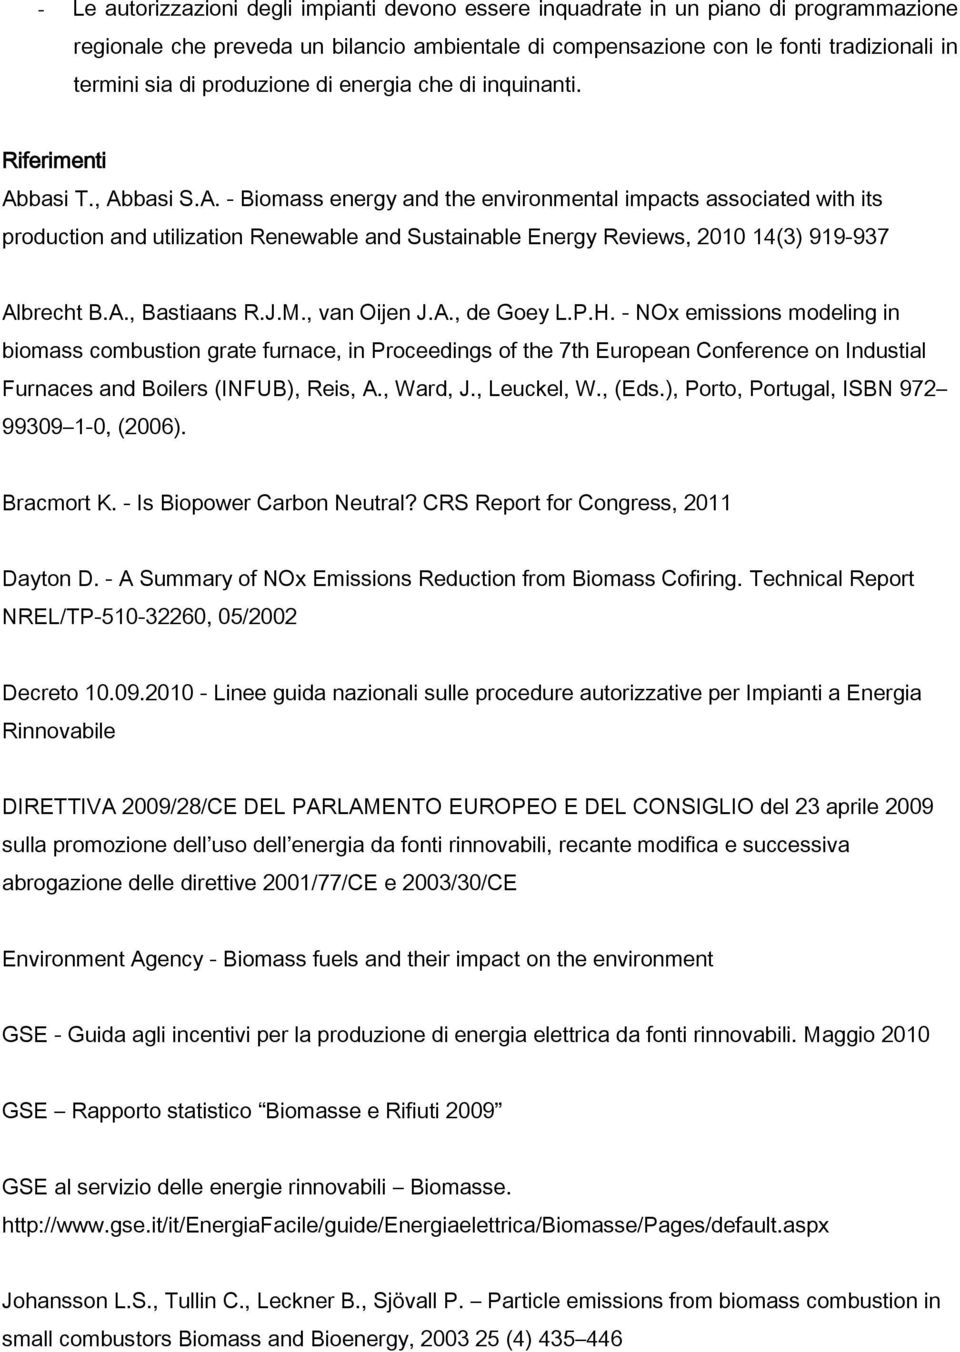 basi T., Abbasi S.A. - Biomass energy and the environmental impacts associated with its production and utilization Renewable and Sustainable Energy Reviews, 2010 14(3) 919-937 Albrecht B.A., Bastiaans R.